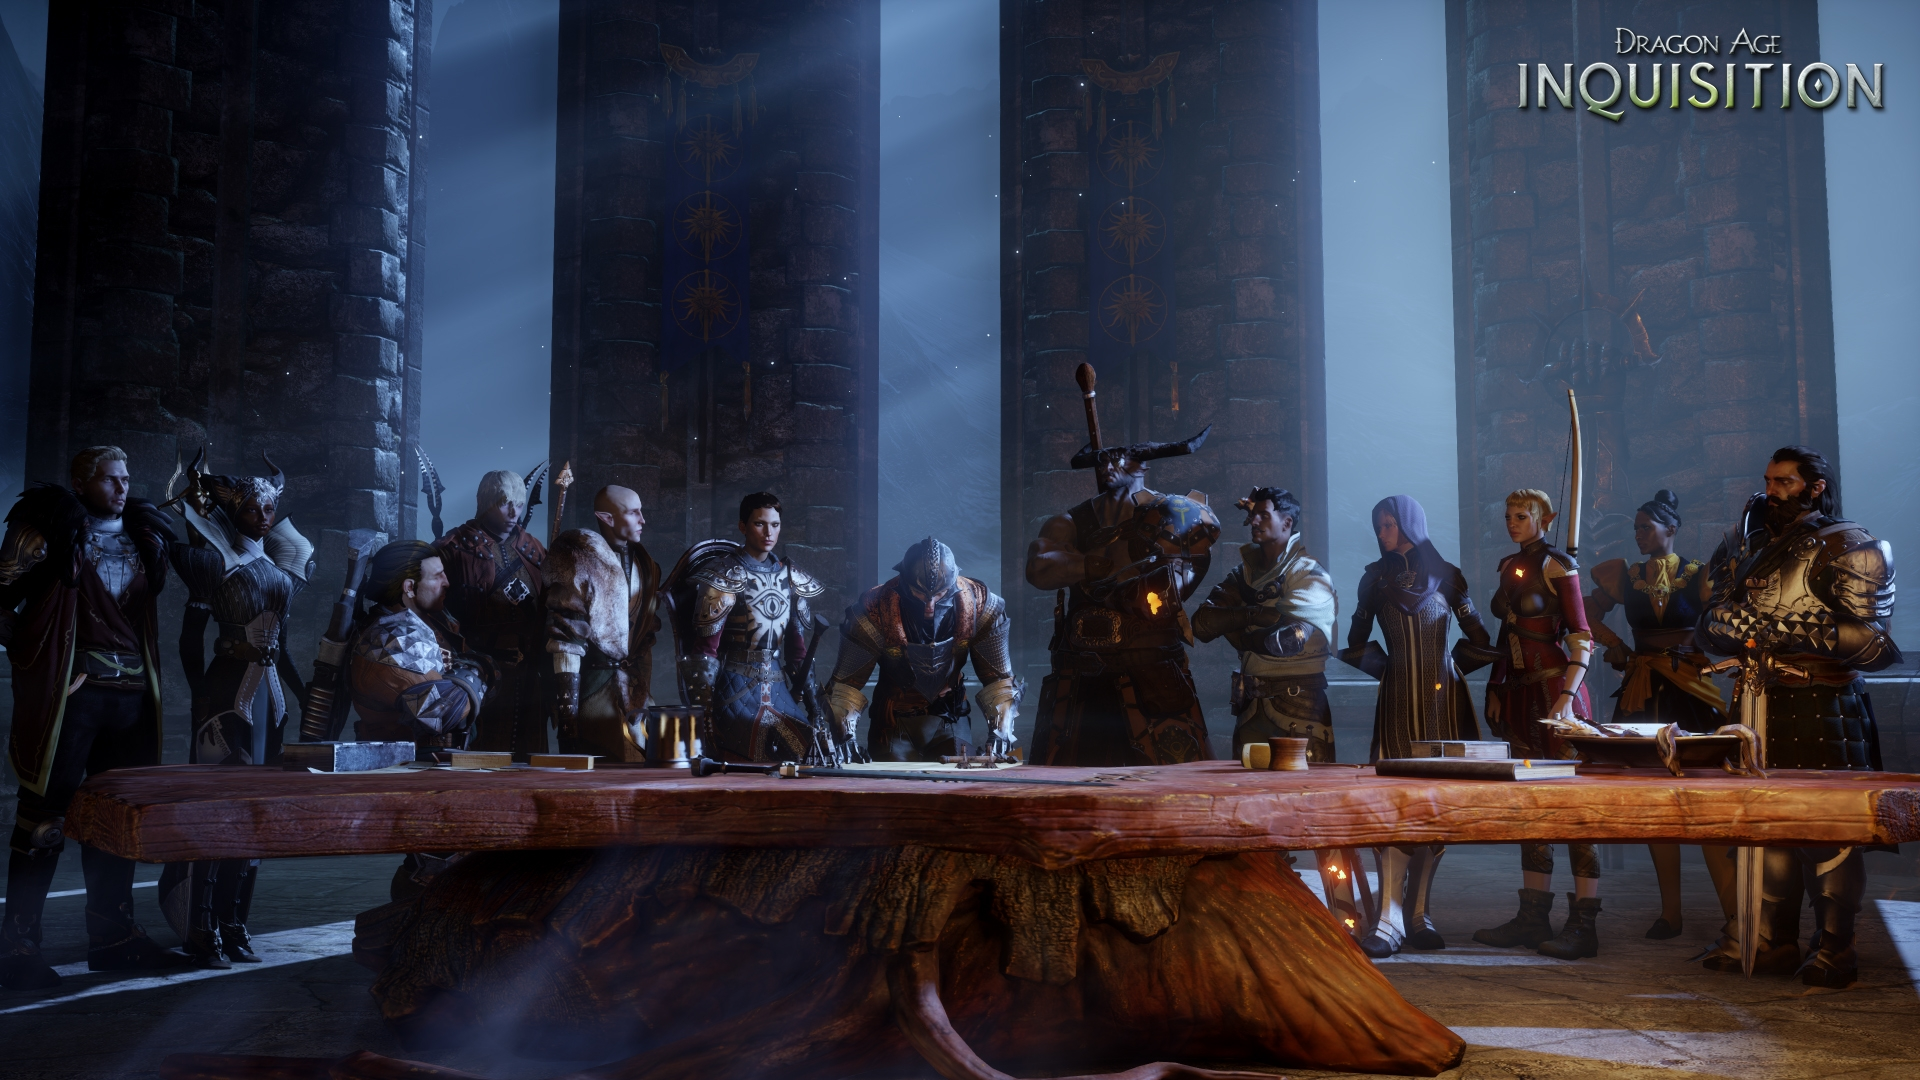 Dragon-Age-Inquisition-Review2.jpg